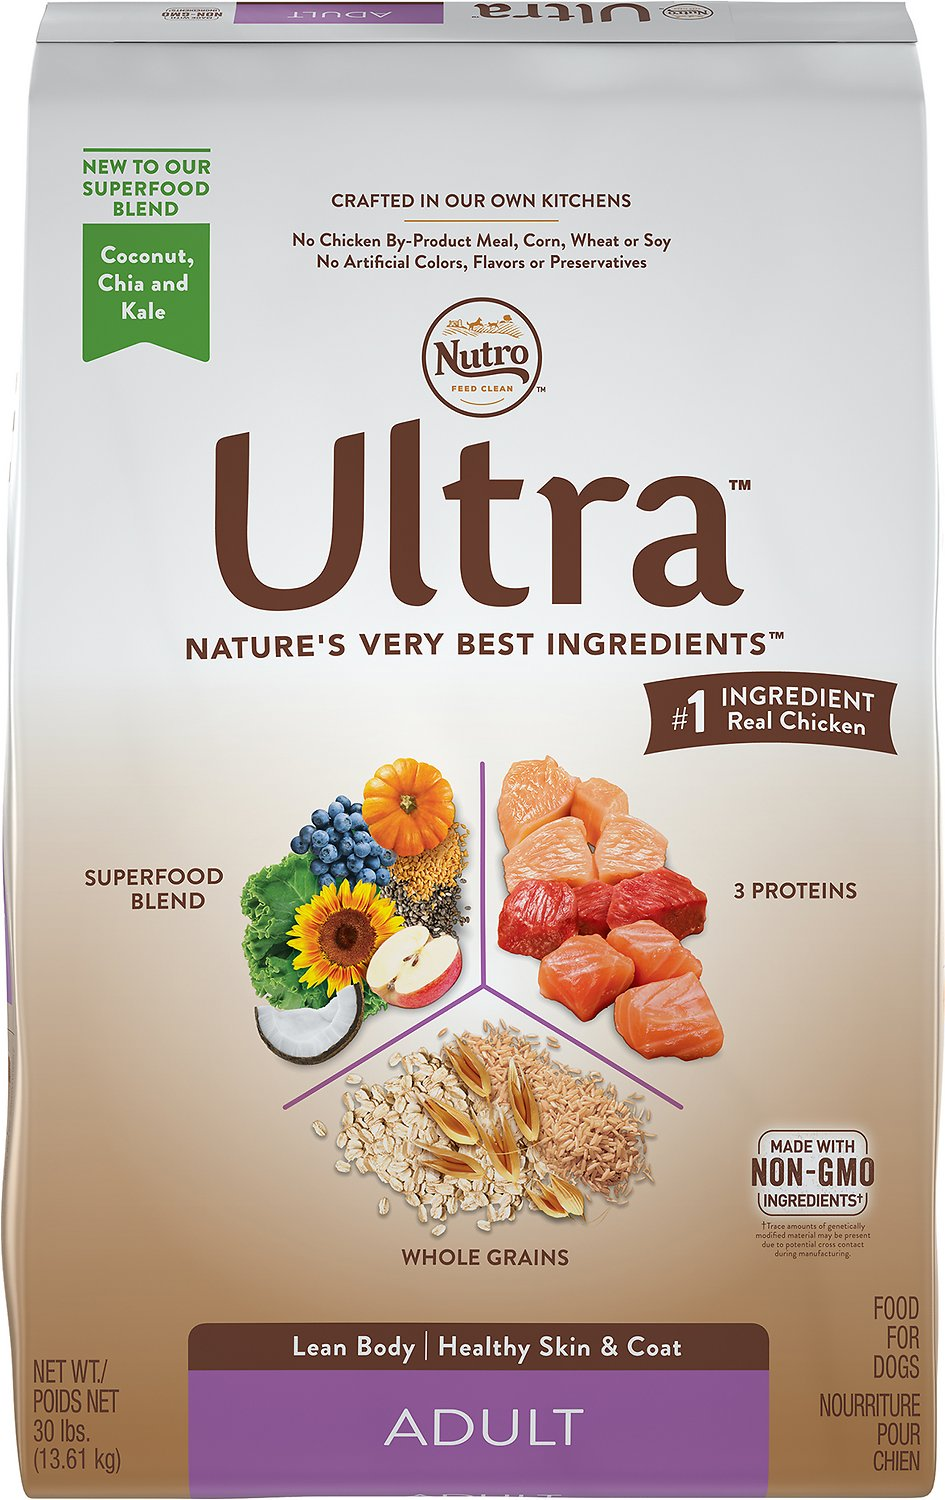 Nutro Ultra Adult Dry Dog Food Image